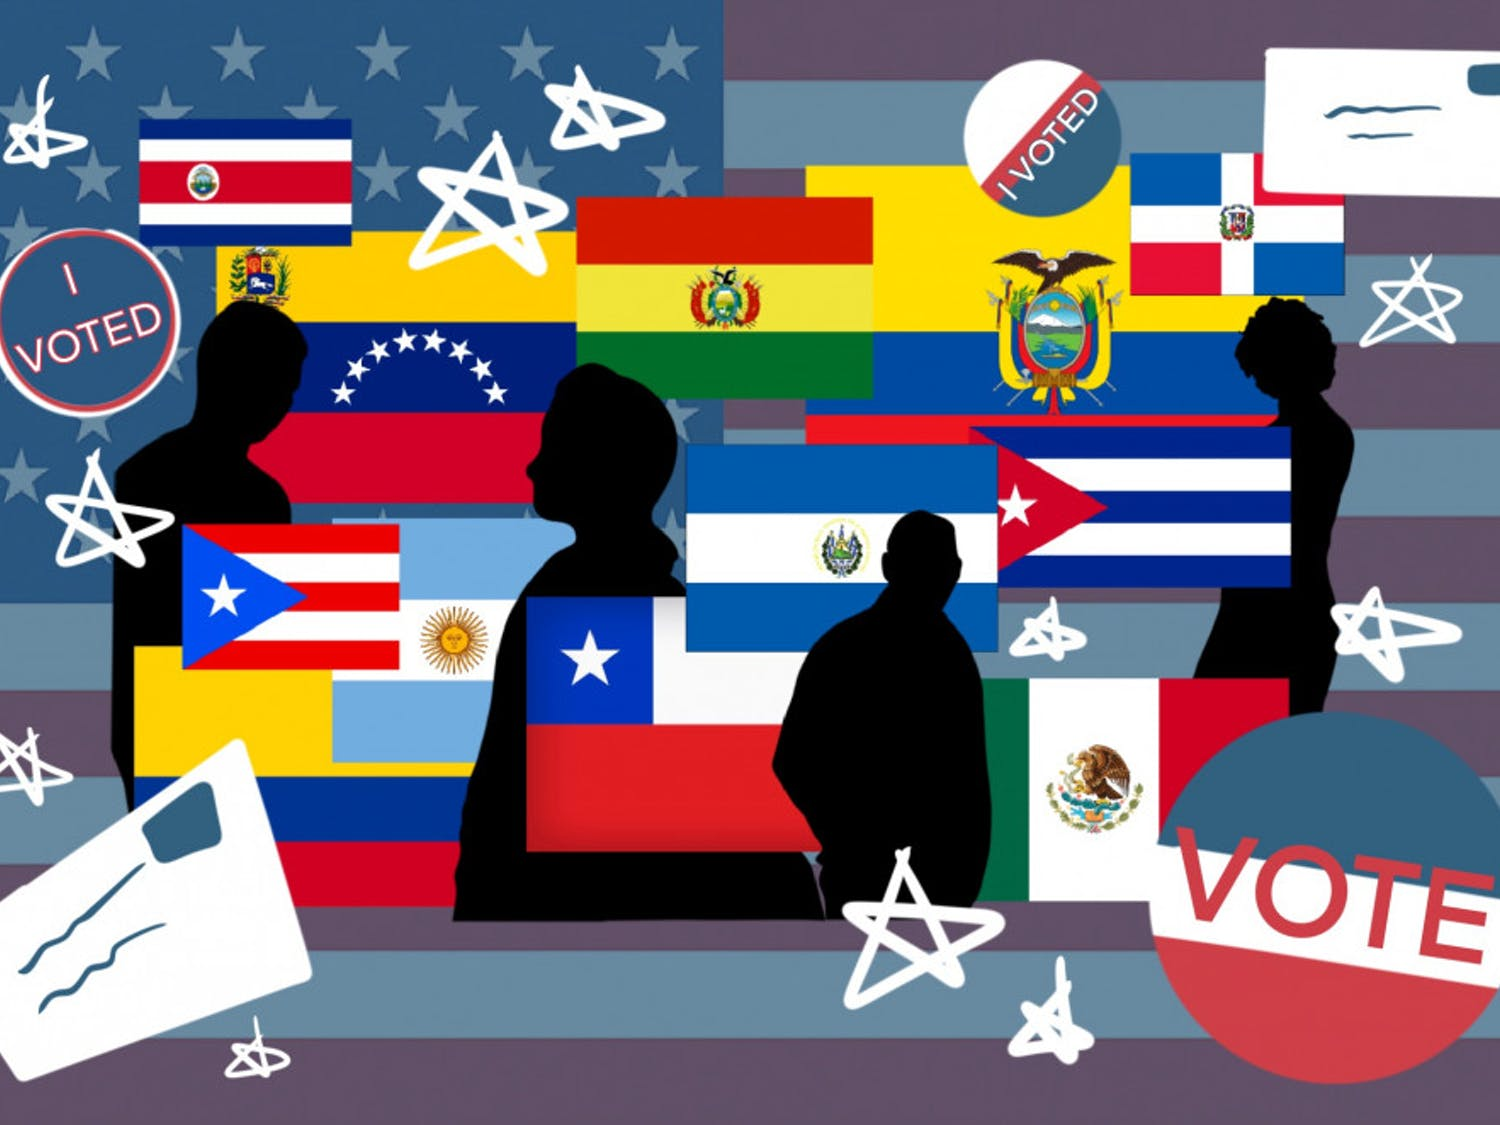 Graphic of Latin and Hispanic country flags